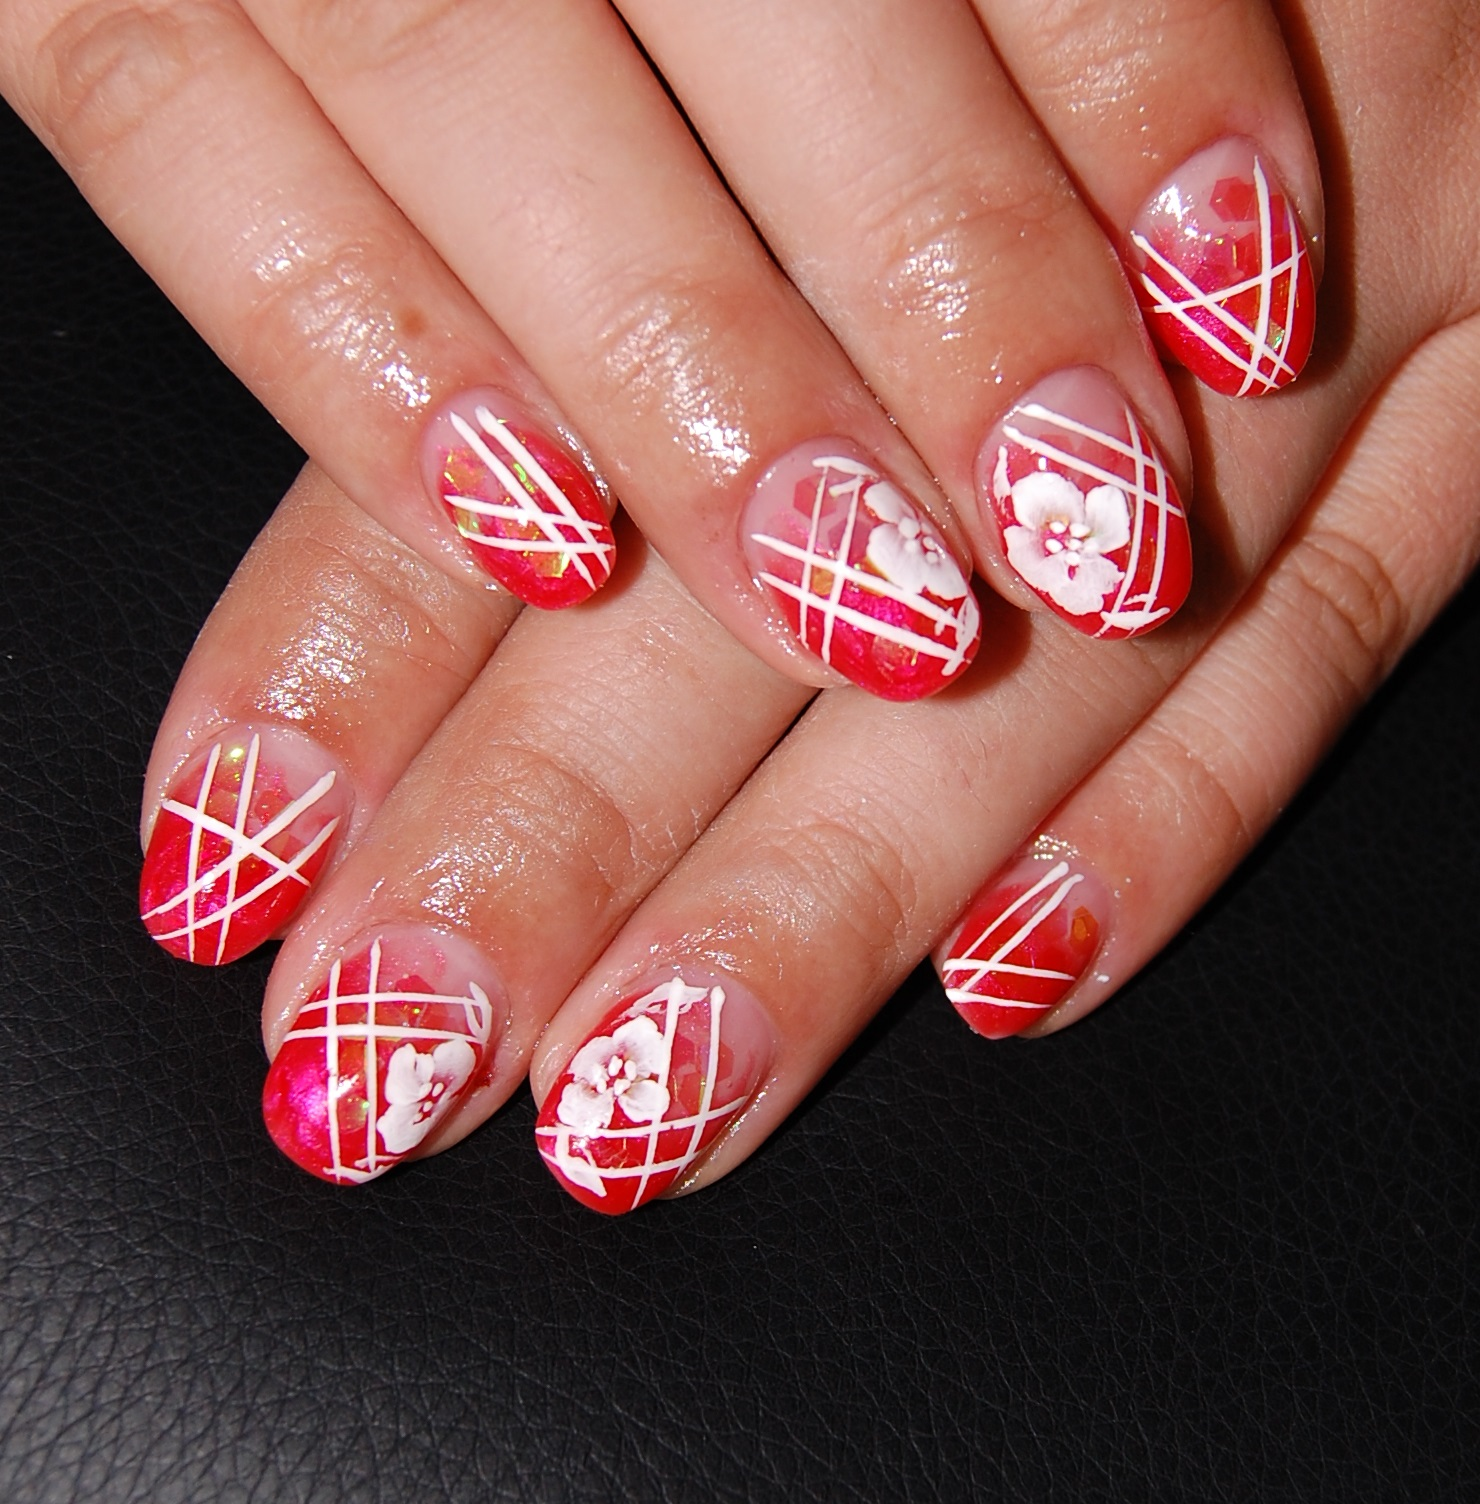 Guest nail art 21 best nail art designs gallery bestartnails bright nails prinsesfo Images